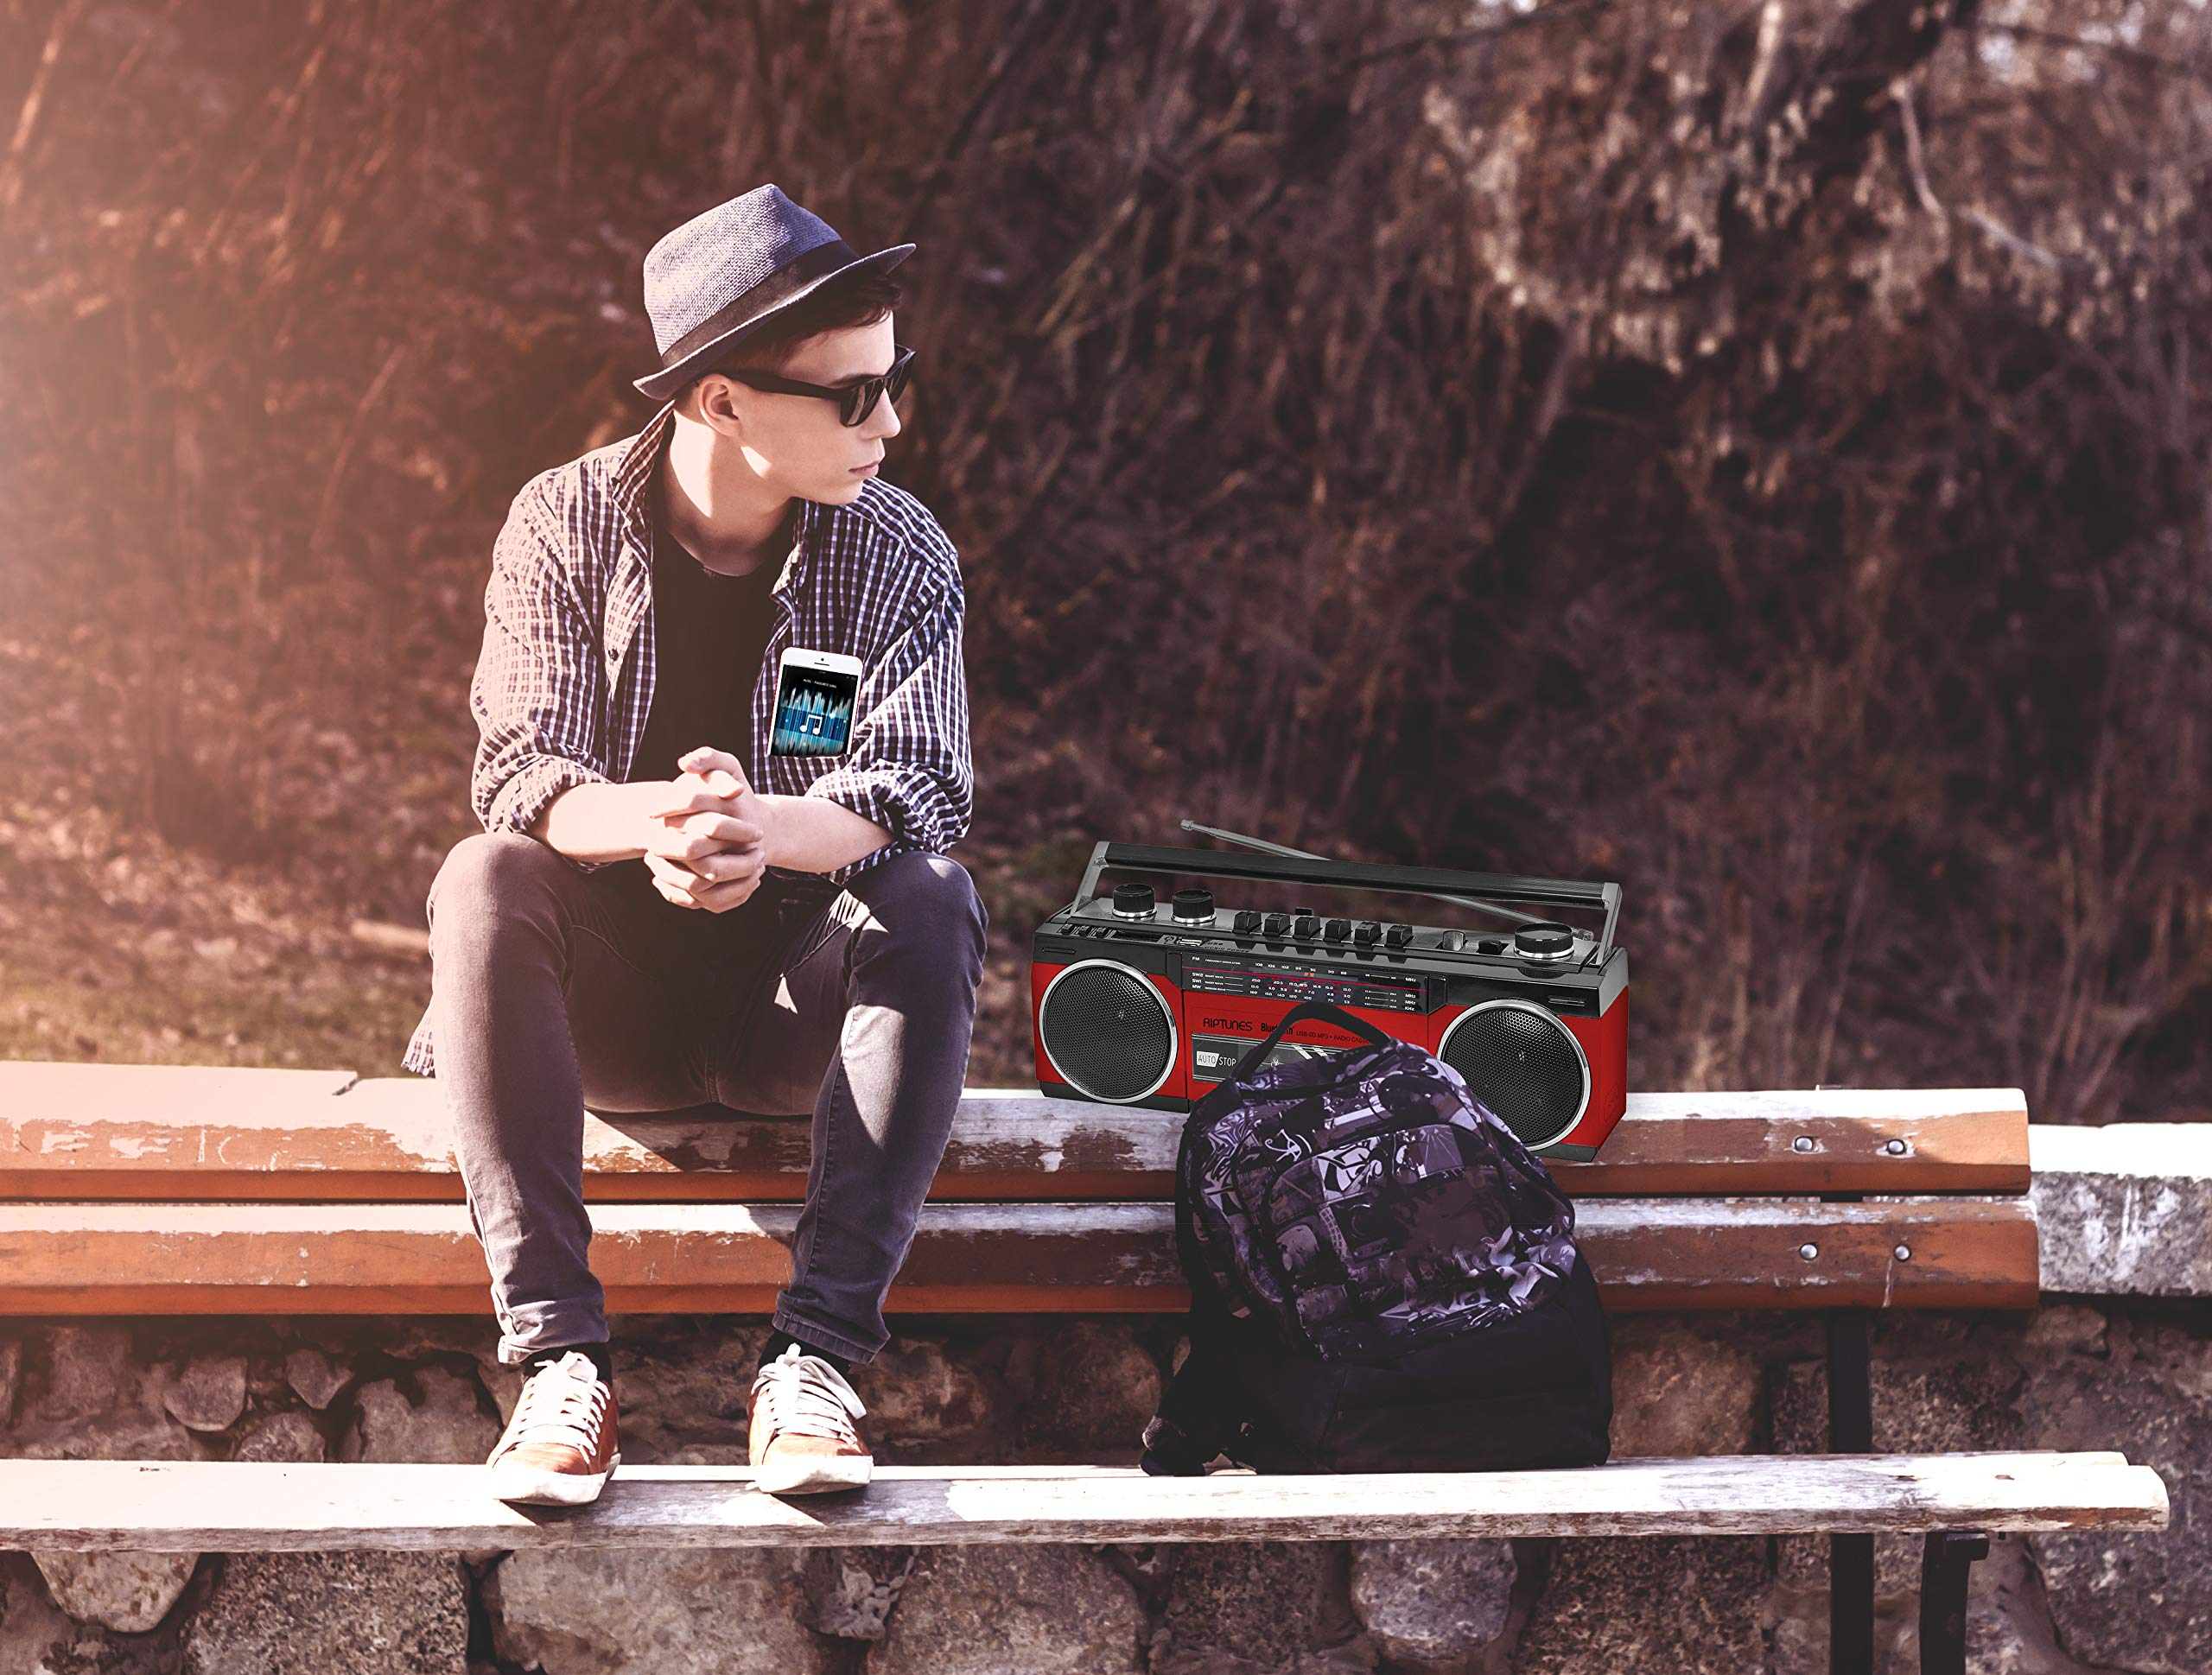 Riptunes Cassette Boombox, Retro Blueooth Boombox, Cassette Player and Recorder, AM/FM/SW-1-SW2 Radio-4-Band Radio, USB, and SD, Headphone Jack, RED by Riptunes (Image #2)